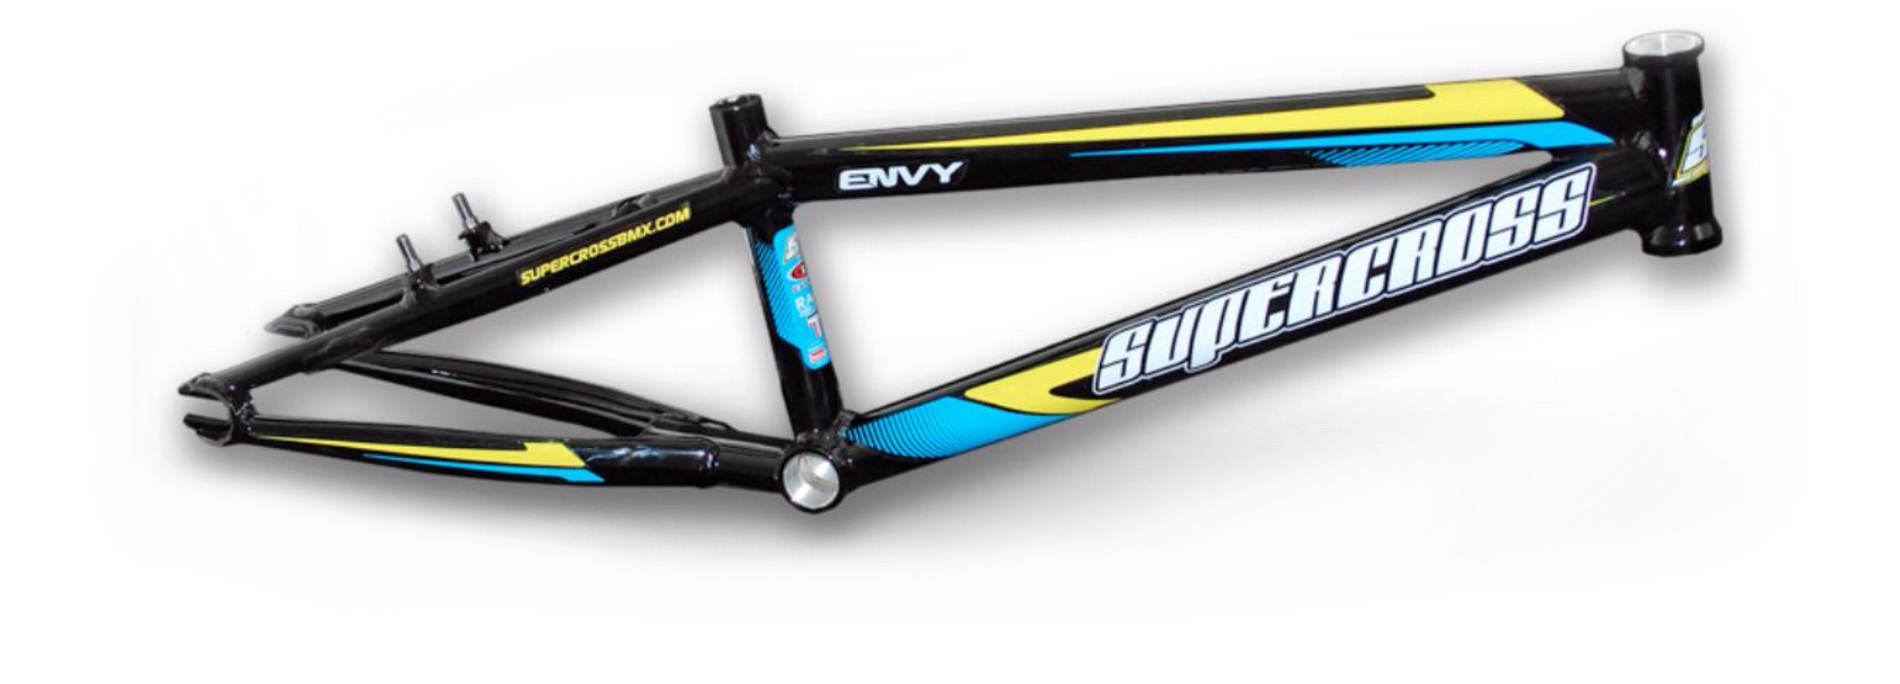 Supercross Envy V3 Black